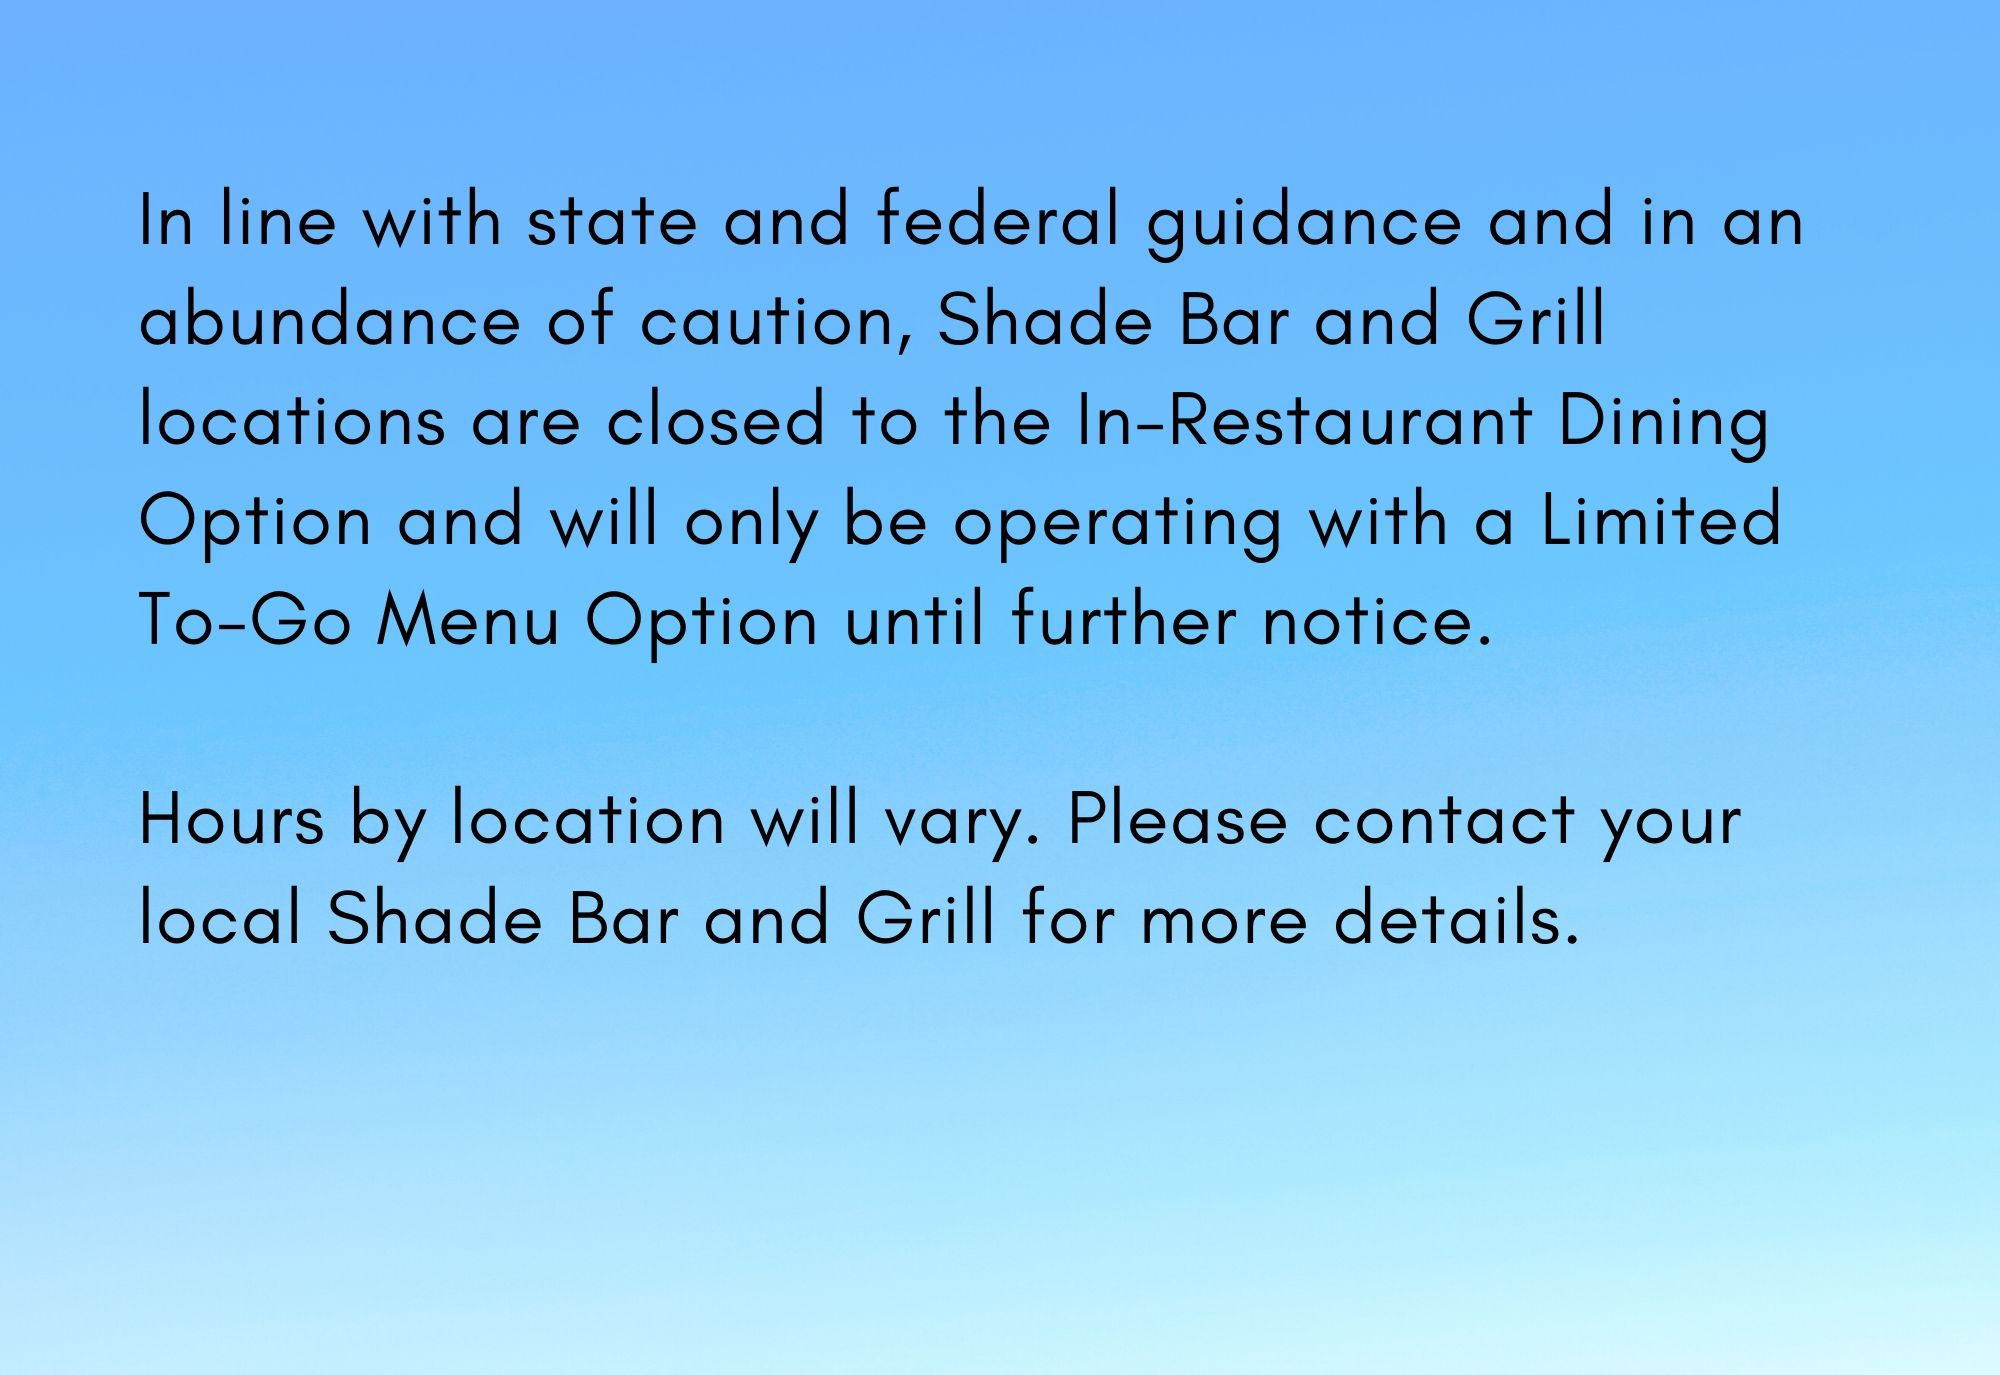 Coronavirus Information from Shade Bar and Grill